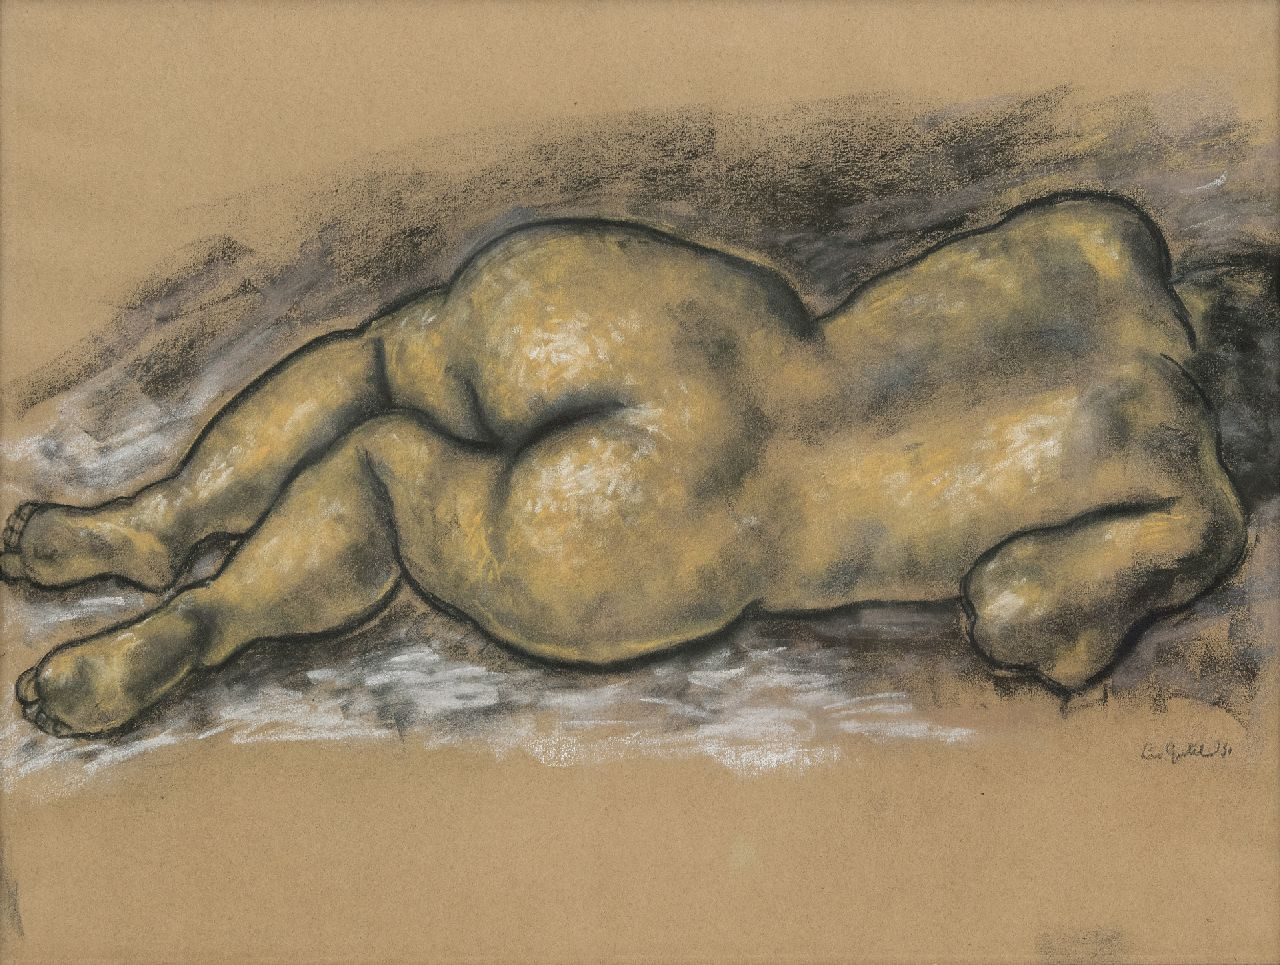 Gestel L.  | Leendert 'Leo' Gestel | Watercolours and drawings offered for sale | Reclining nude, charcoal and pastel on paper 47.0 x 62.5 cm, signed l.r. and dated '31